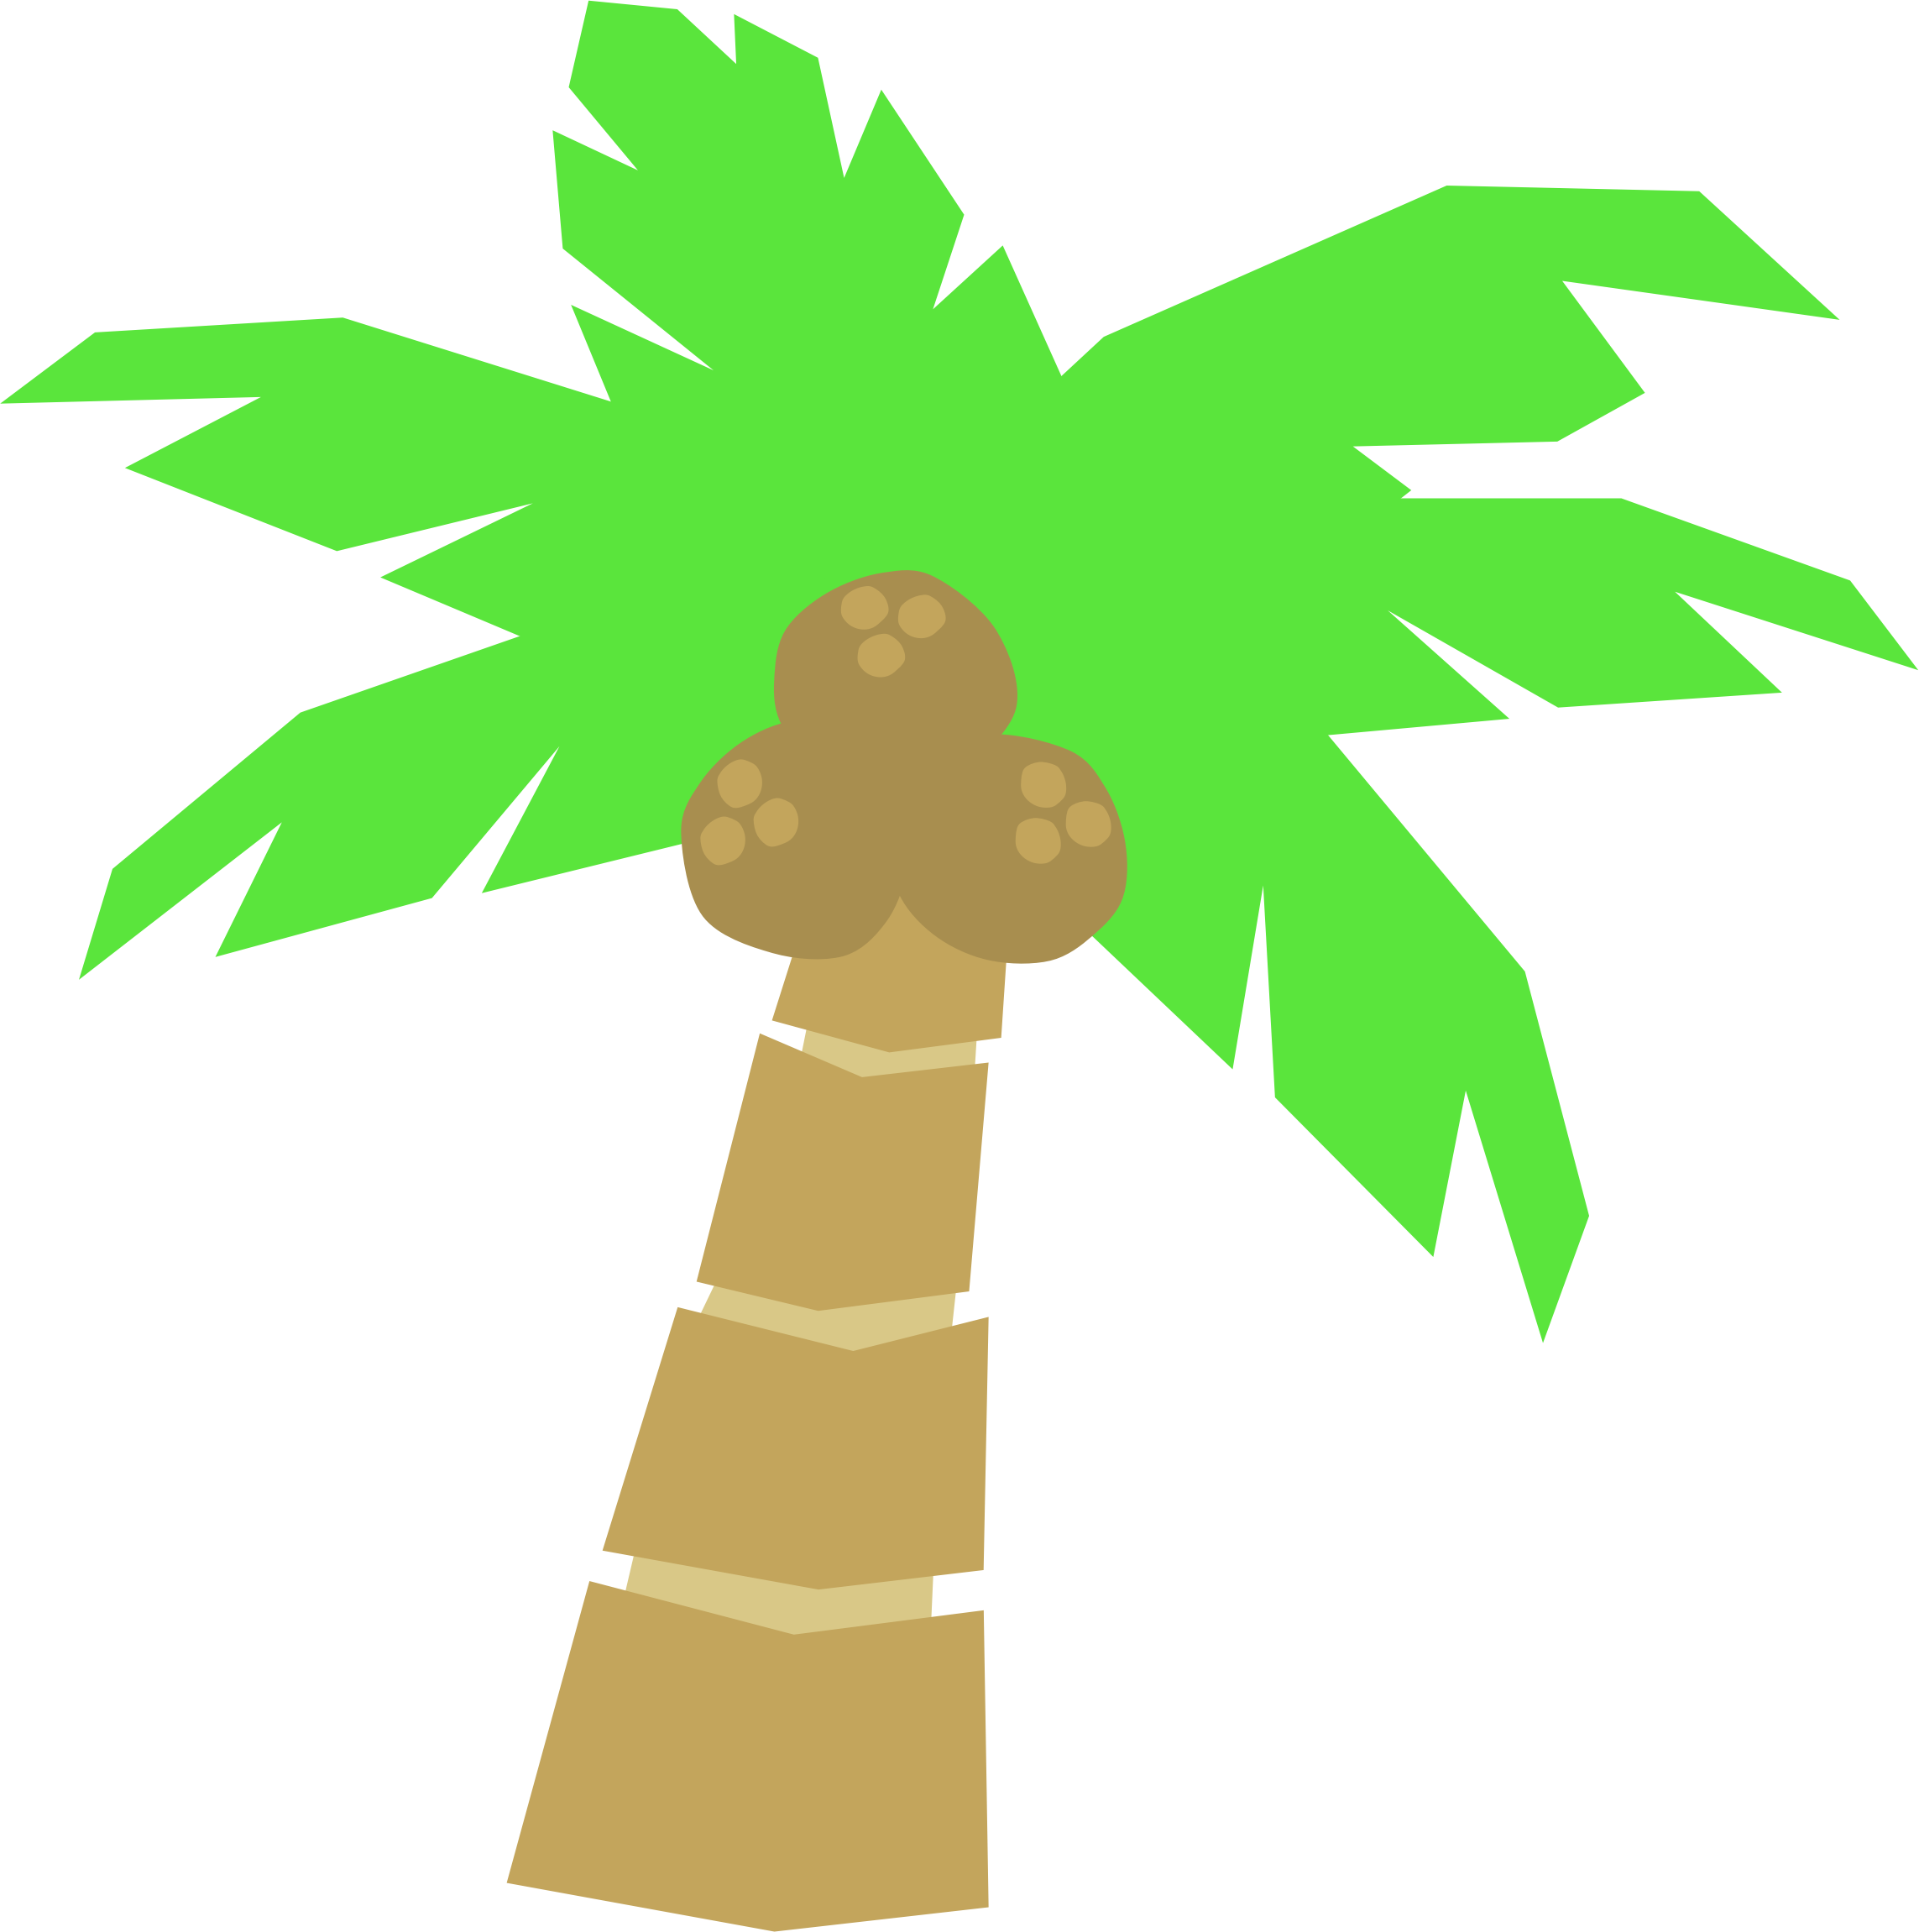 Palm Tree clipart #5, Download drawings